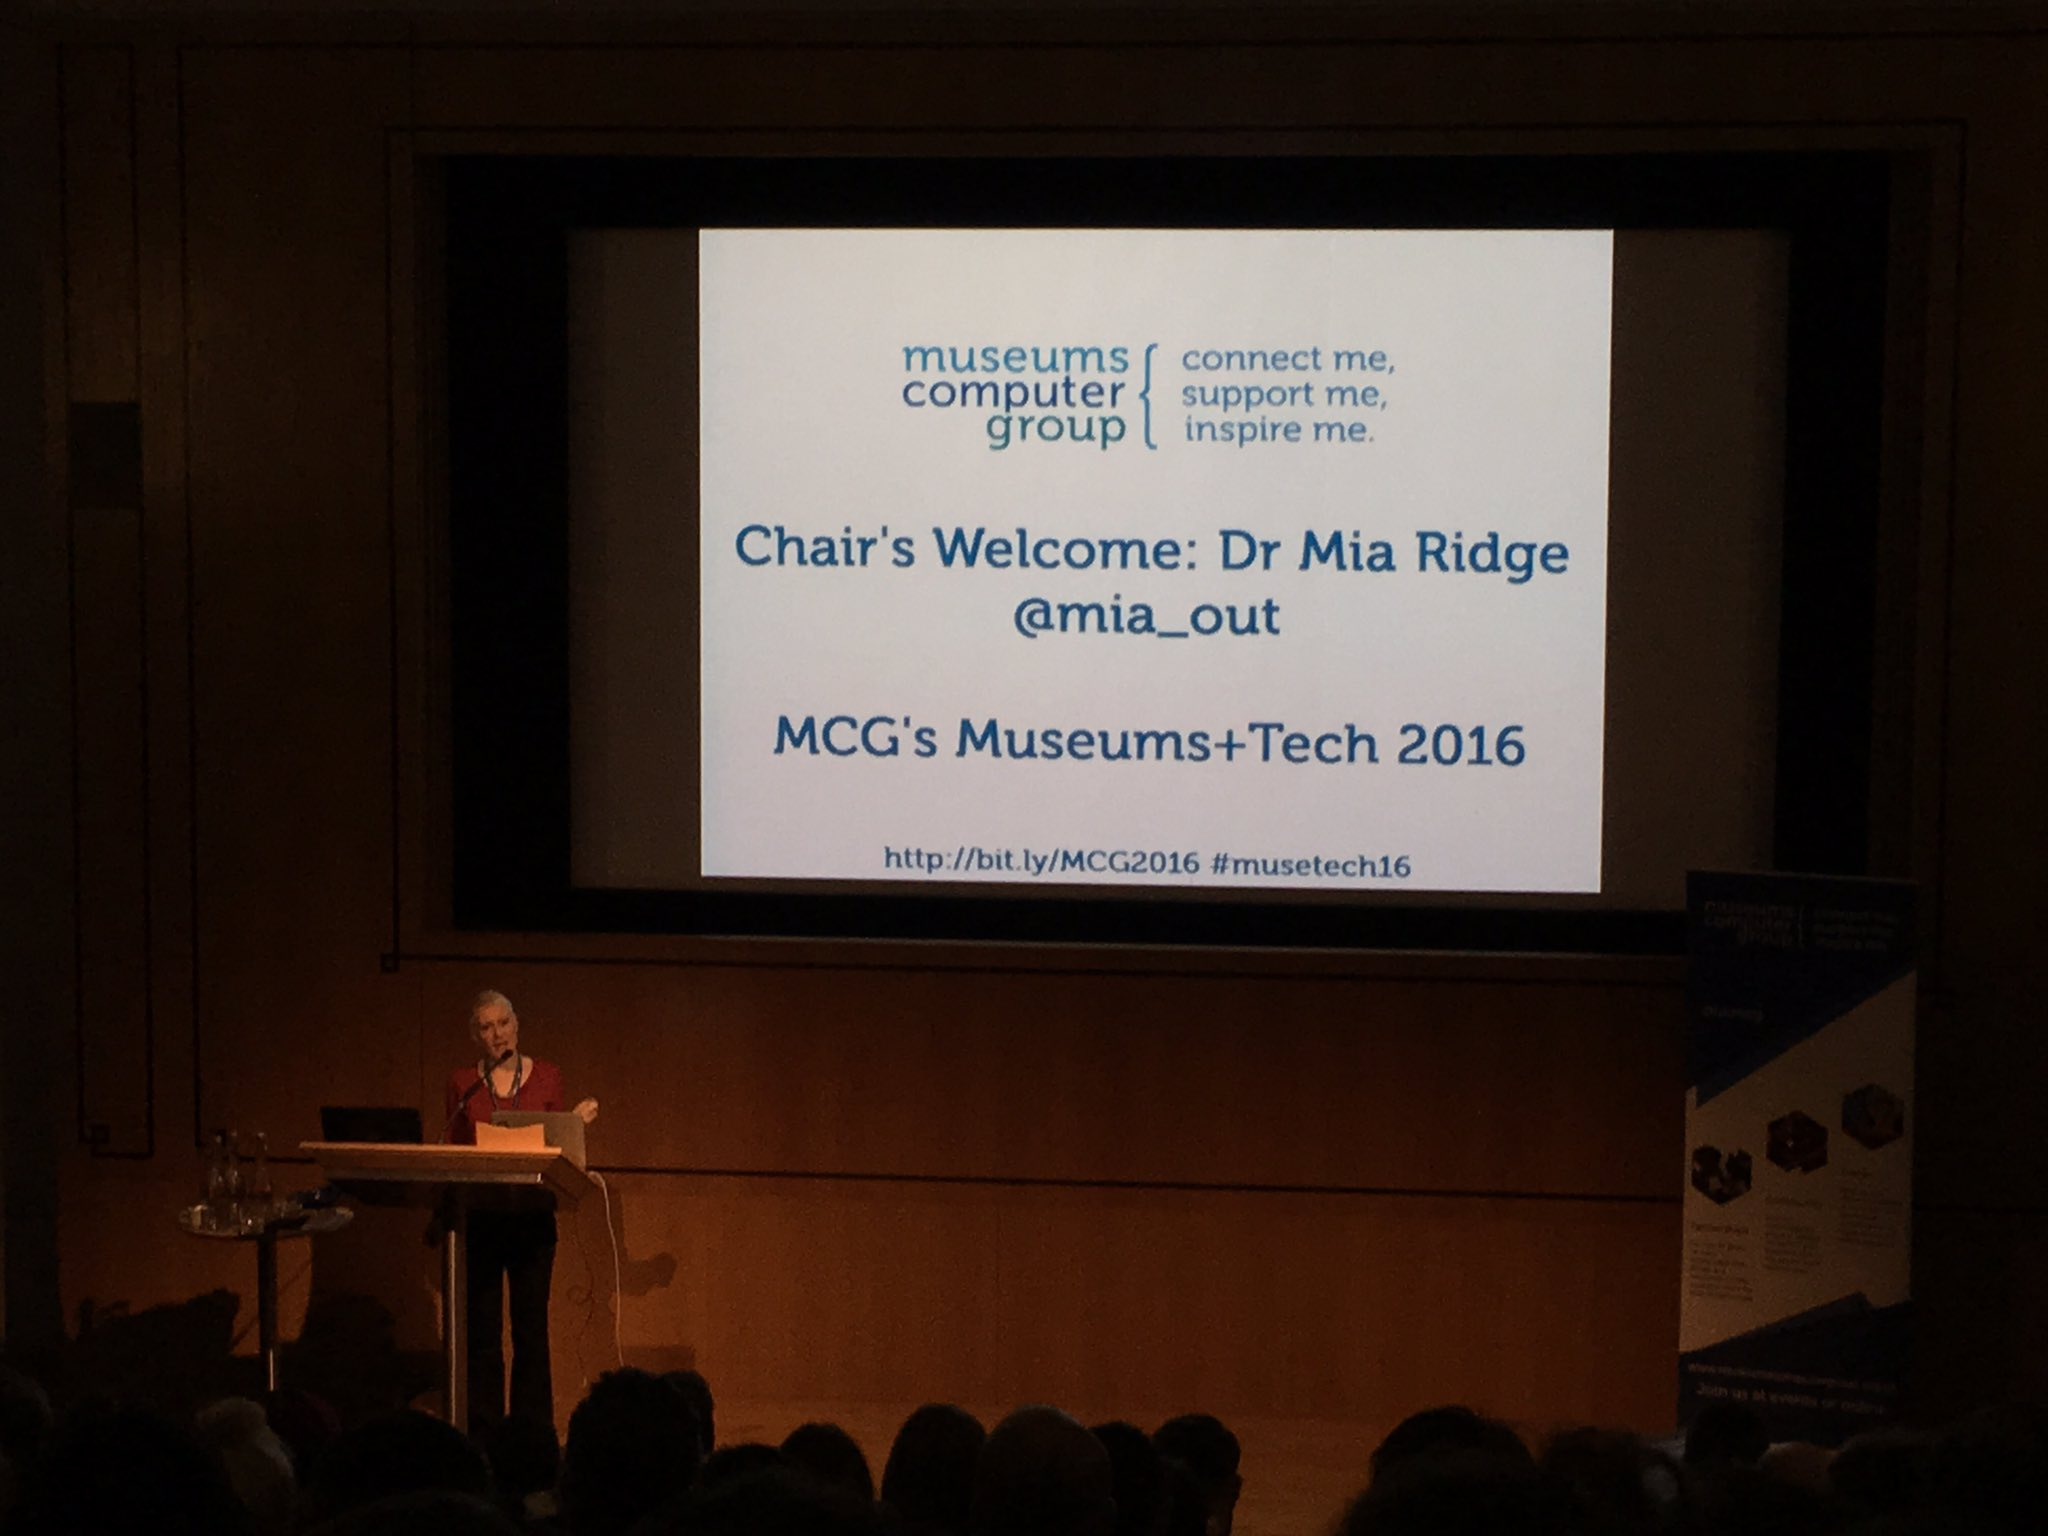 It's time to kick off one of our favourite conferences! @mia_out welcomes us to #musetech16 (formerly UKMW). https://t.co/tn8Tfbvhu1